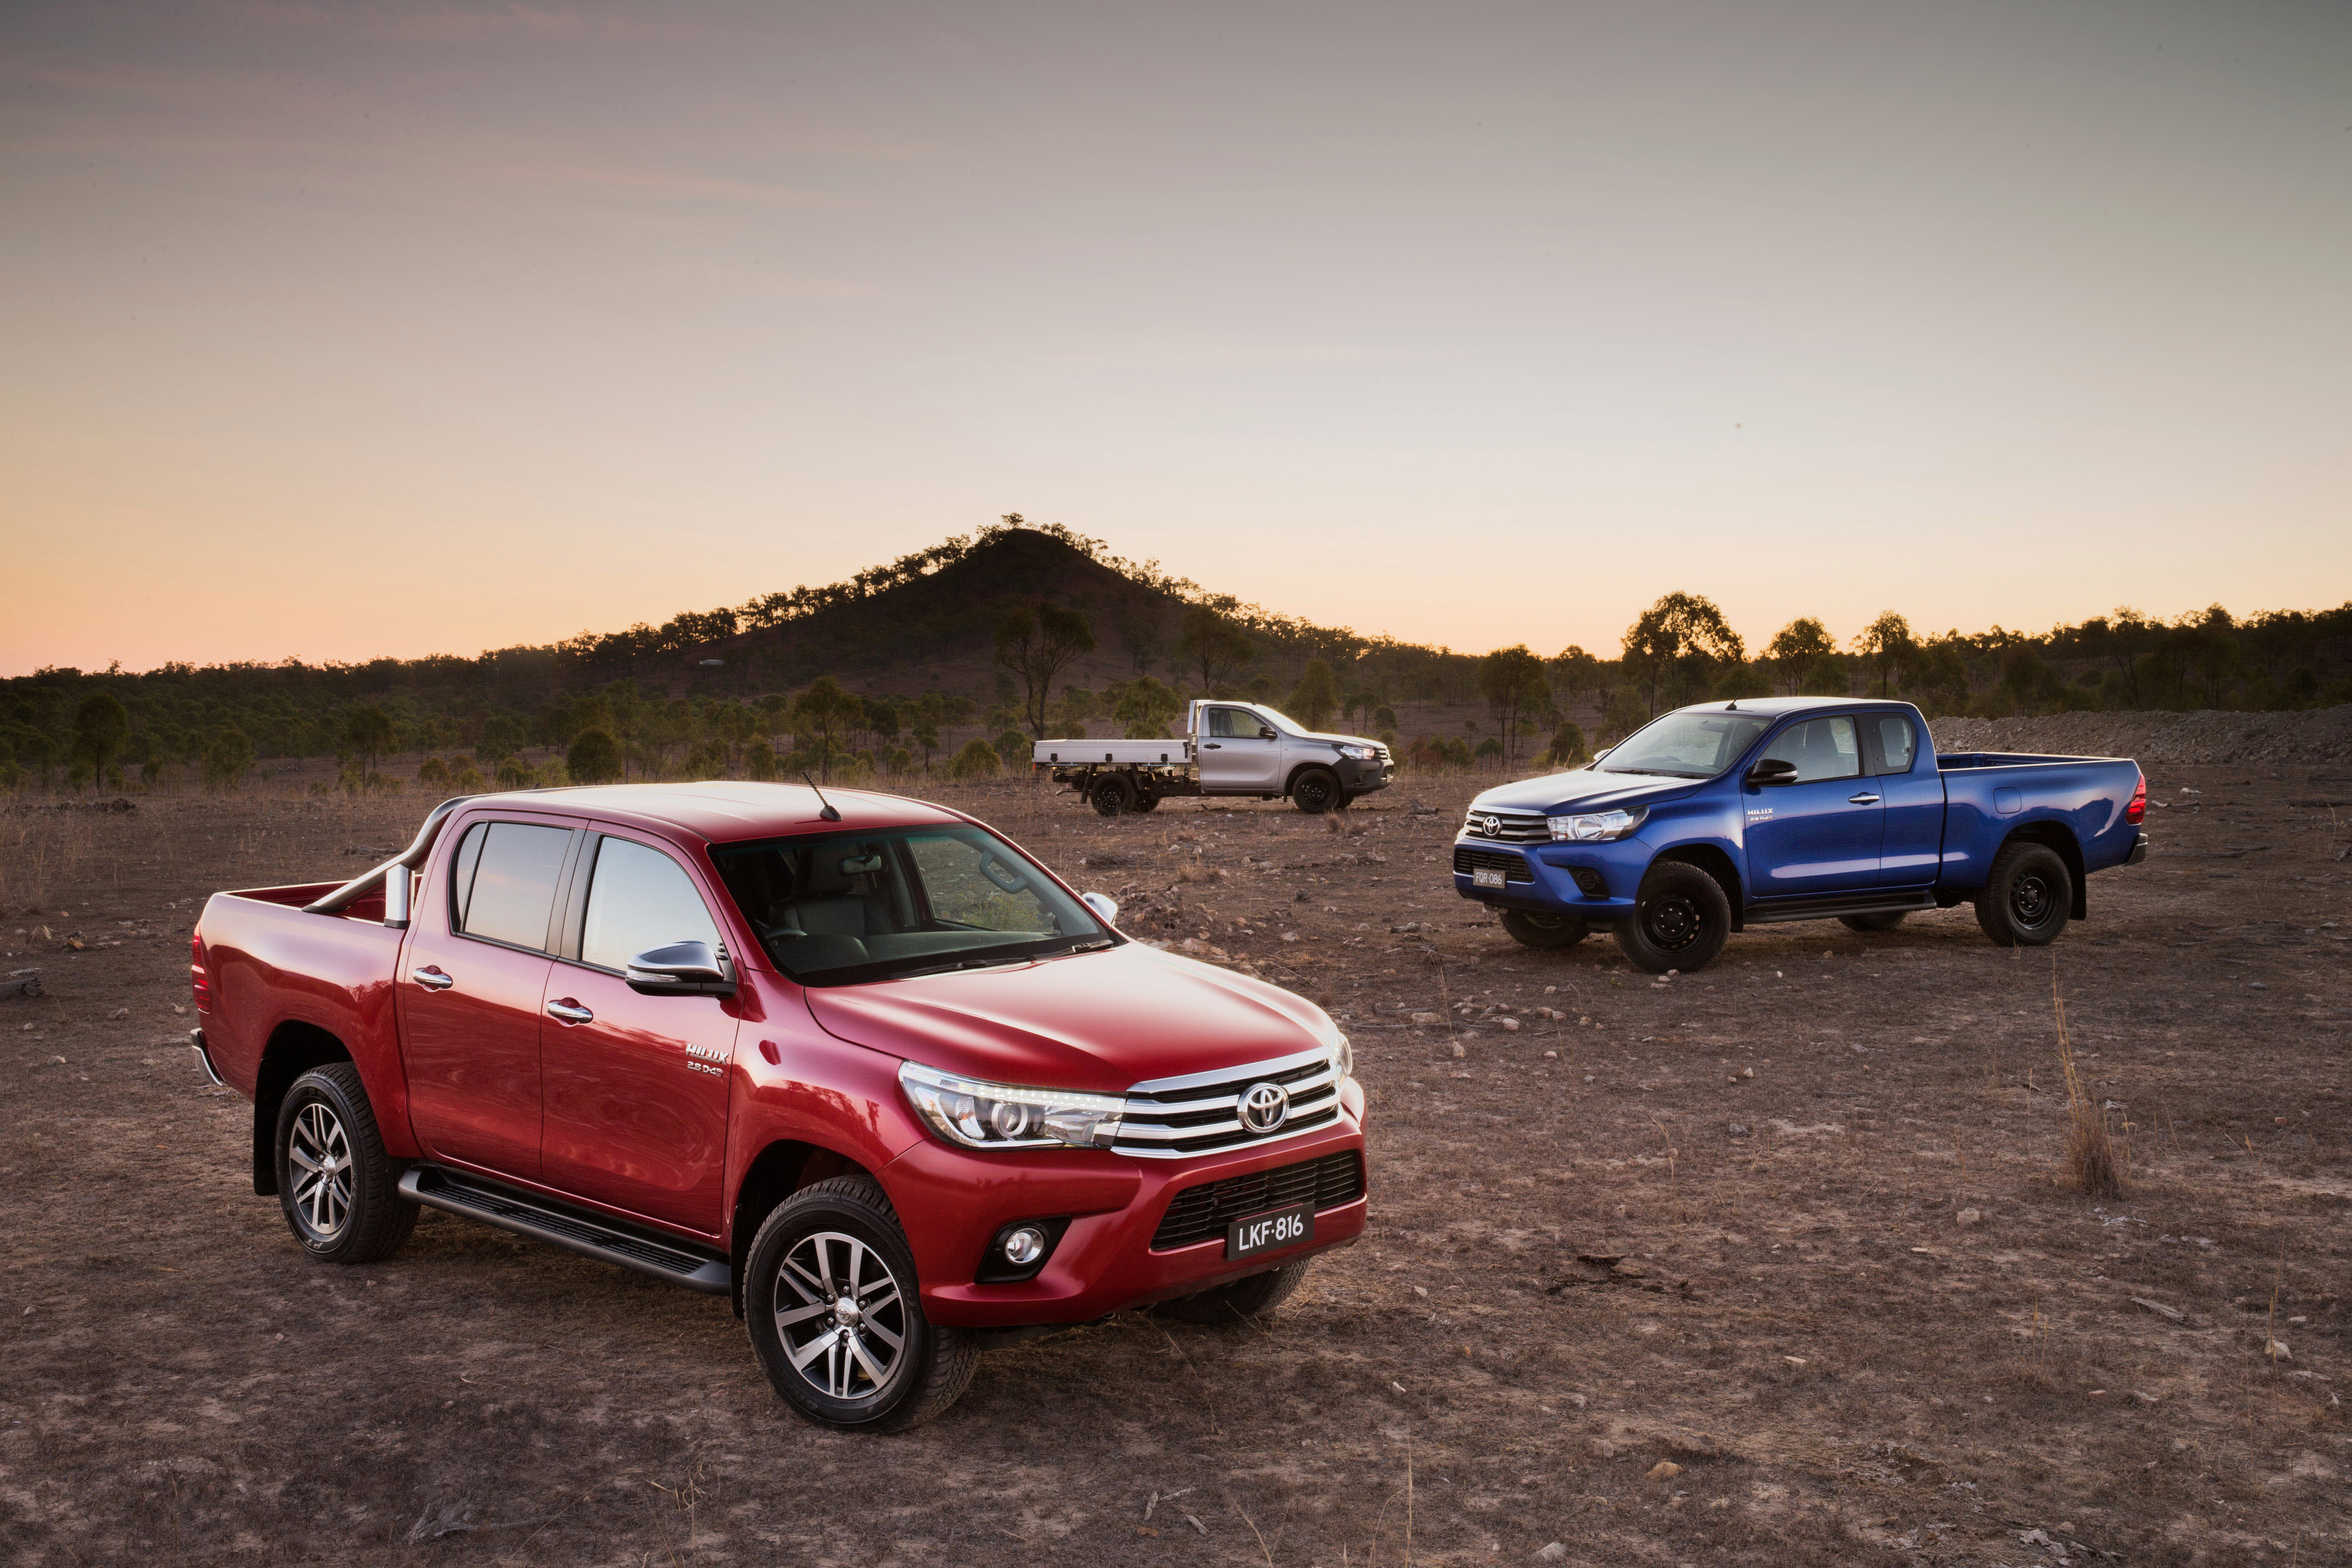 2016 toyota hilux sr 4x4 cab chassis review caradvice - 2015 Toyota Hilux Sr5 Double Cab Front Sr Extra Cab Right And Workmate Single Cab Chassis